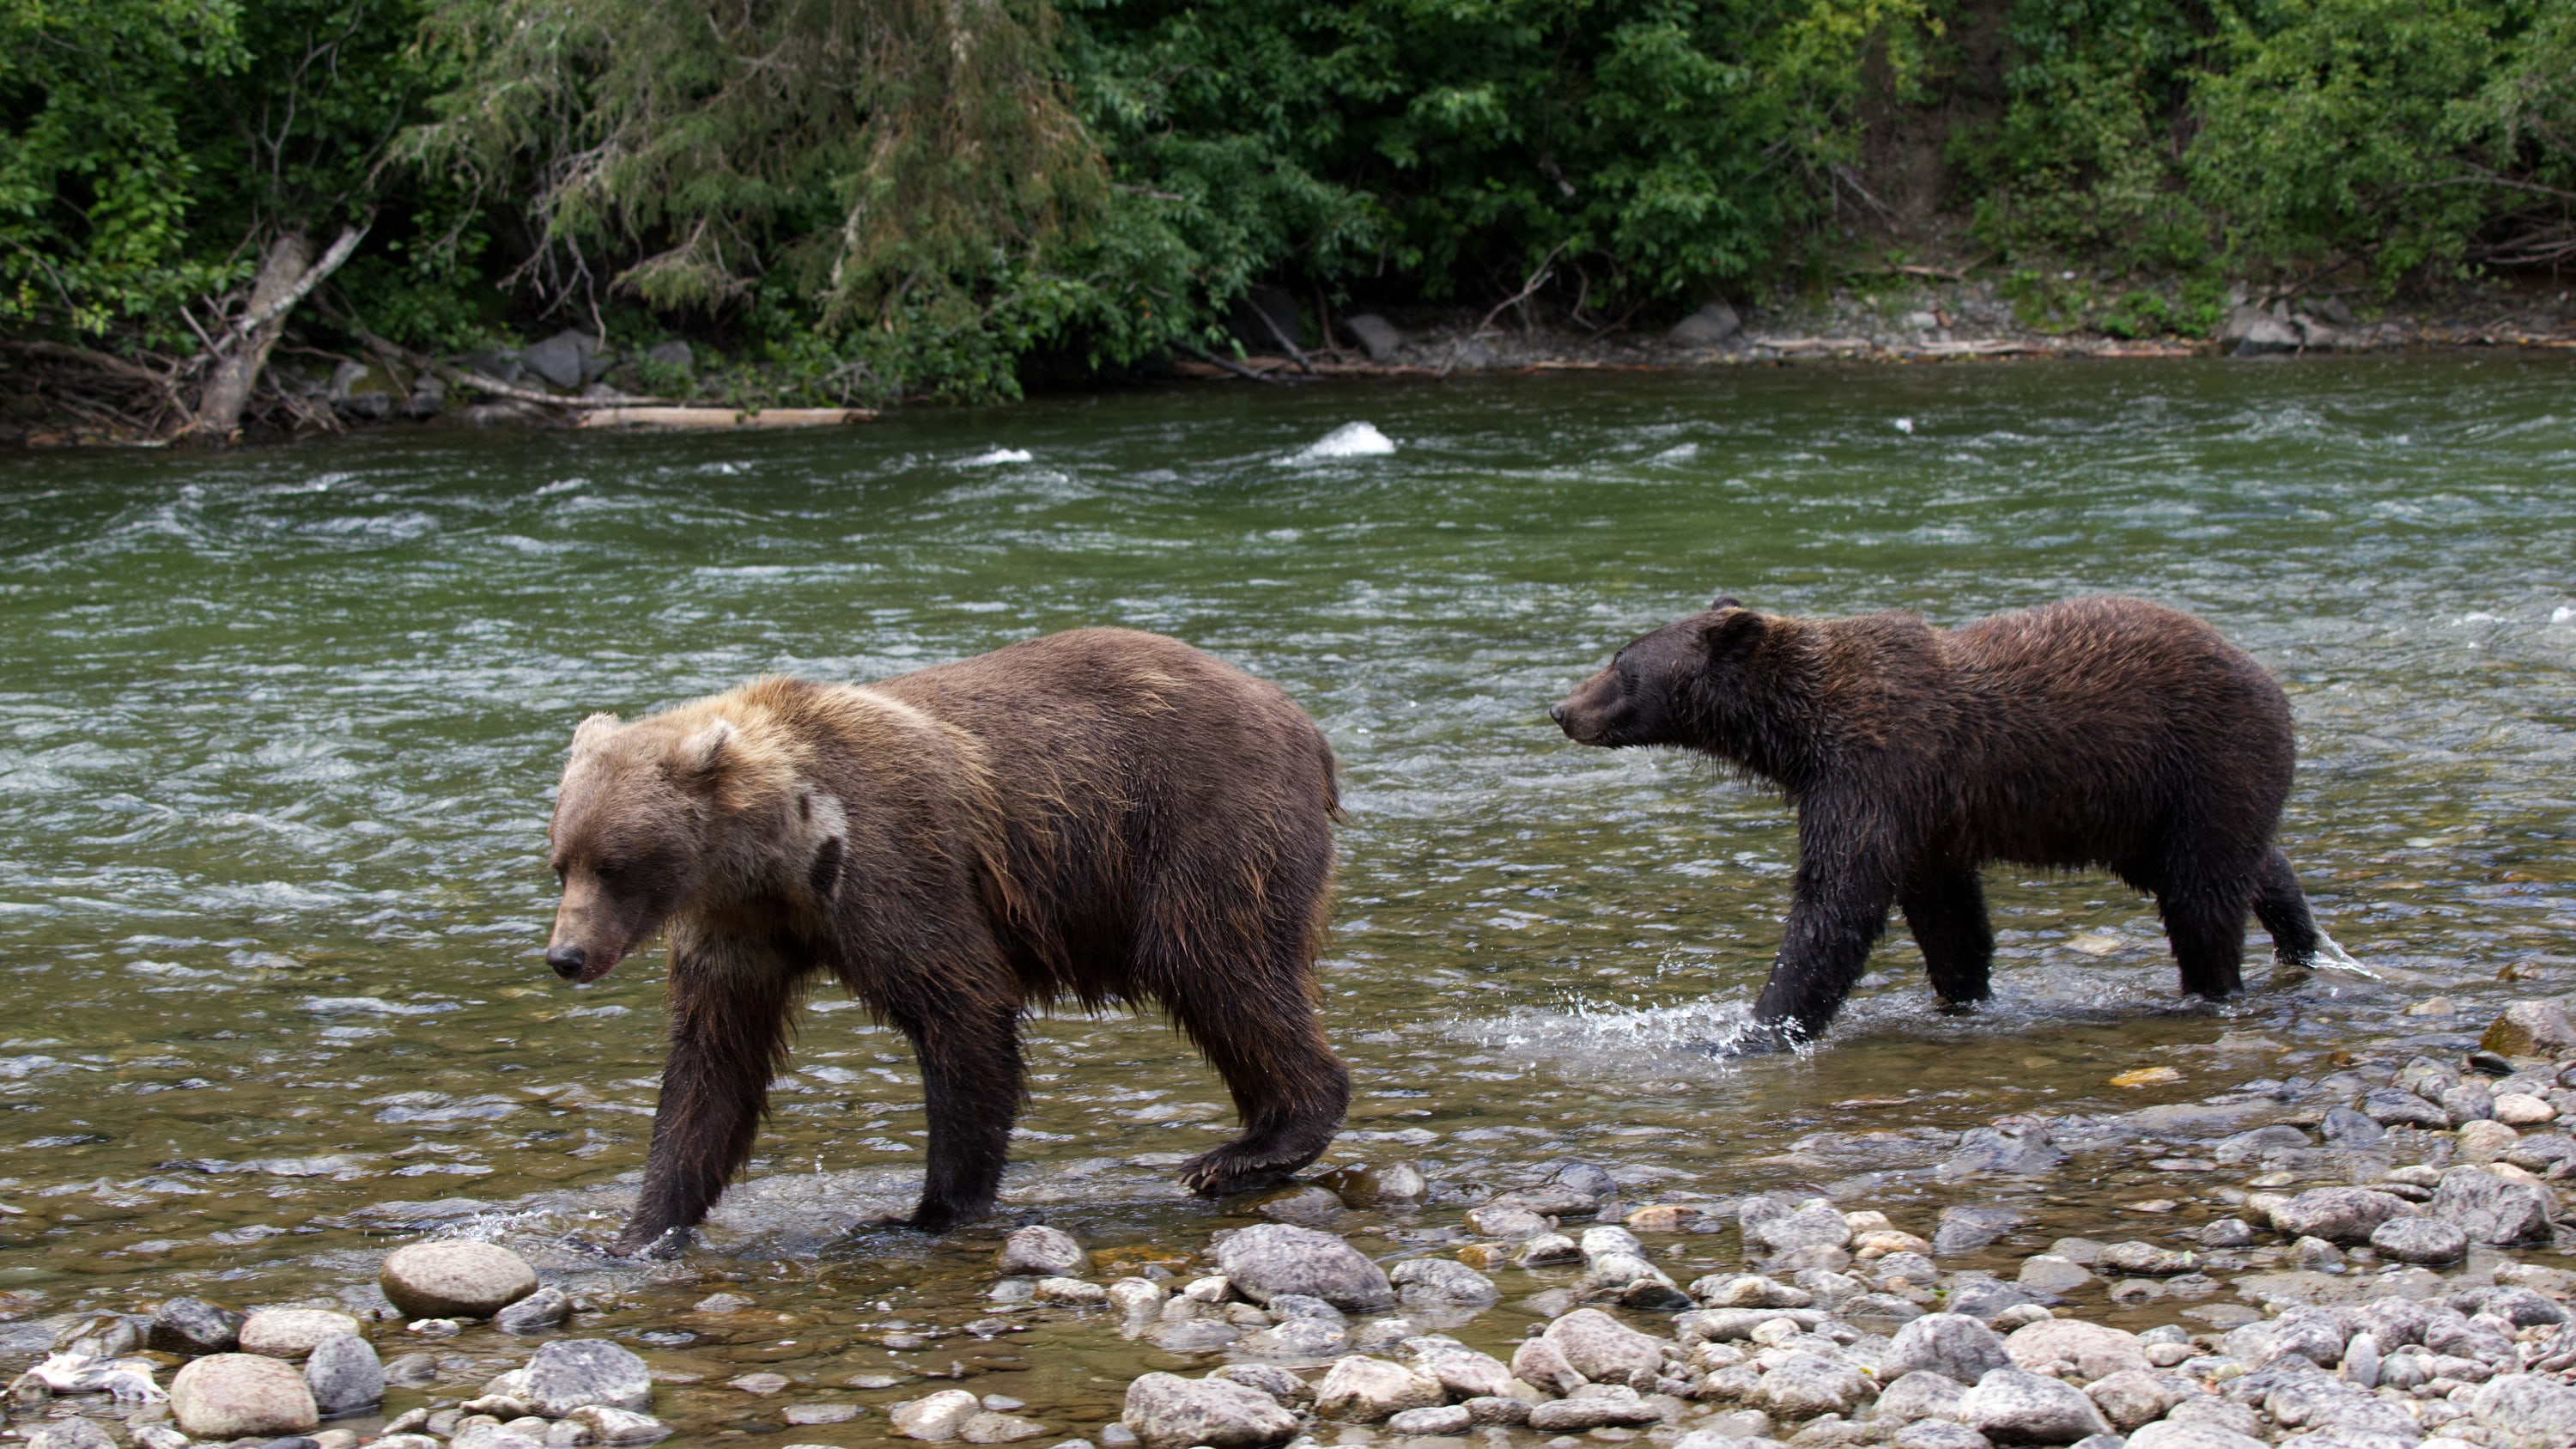 Two bears walk along the riverbank in the Great Bear Rainforest. (National Geographic for Disney+/Samuel Ellis)